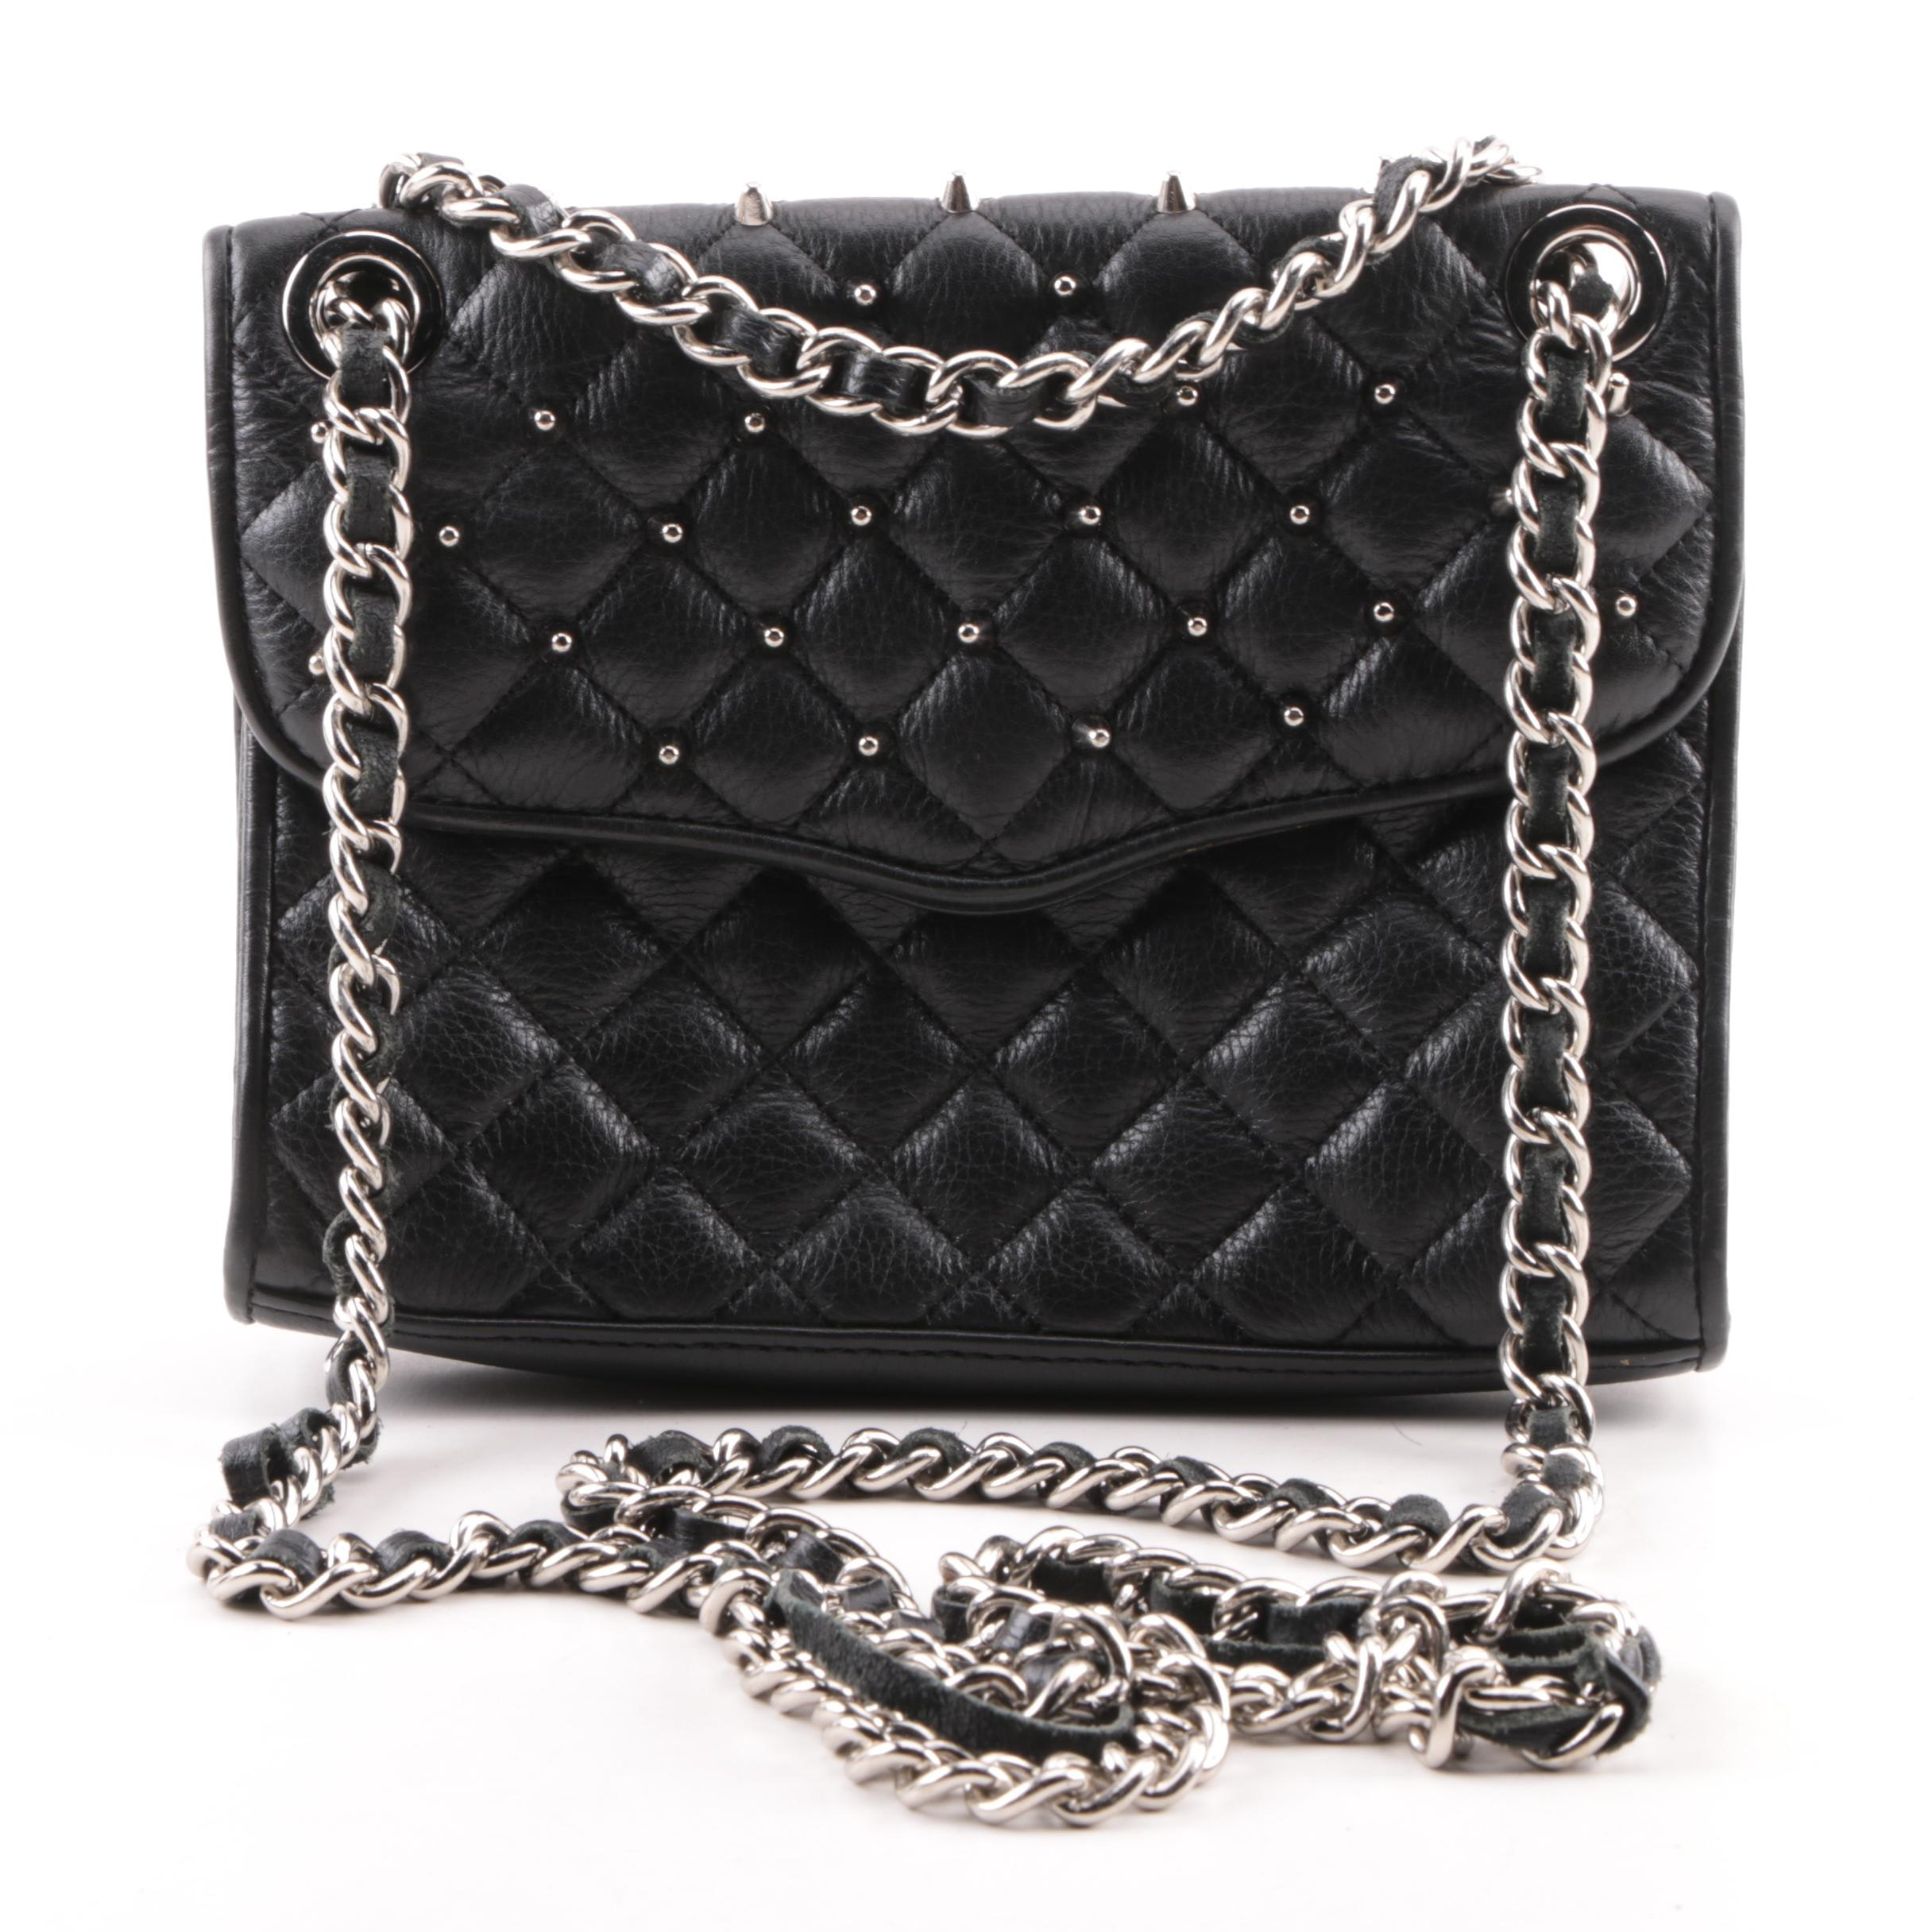 Rebecca Minkoff Black Quilted Leather Studded Flap Handbag